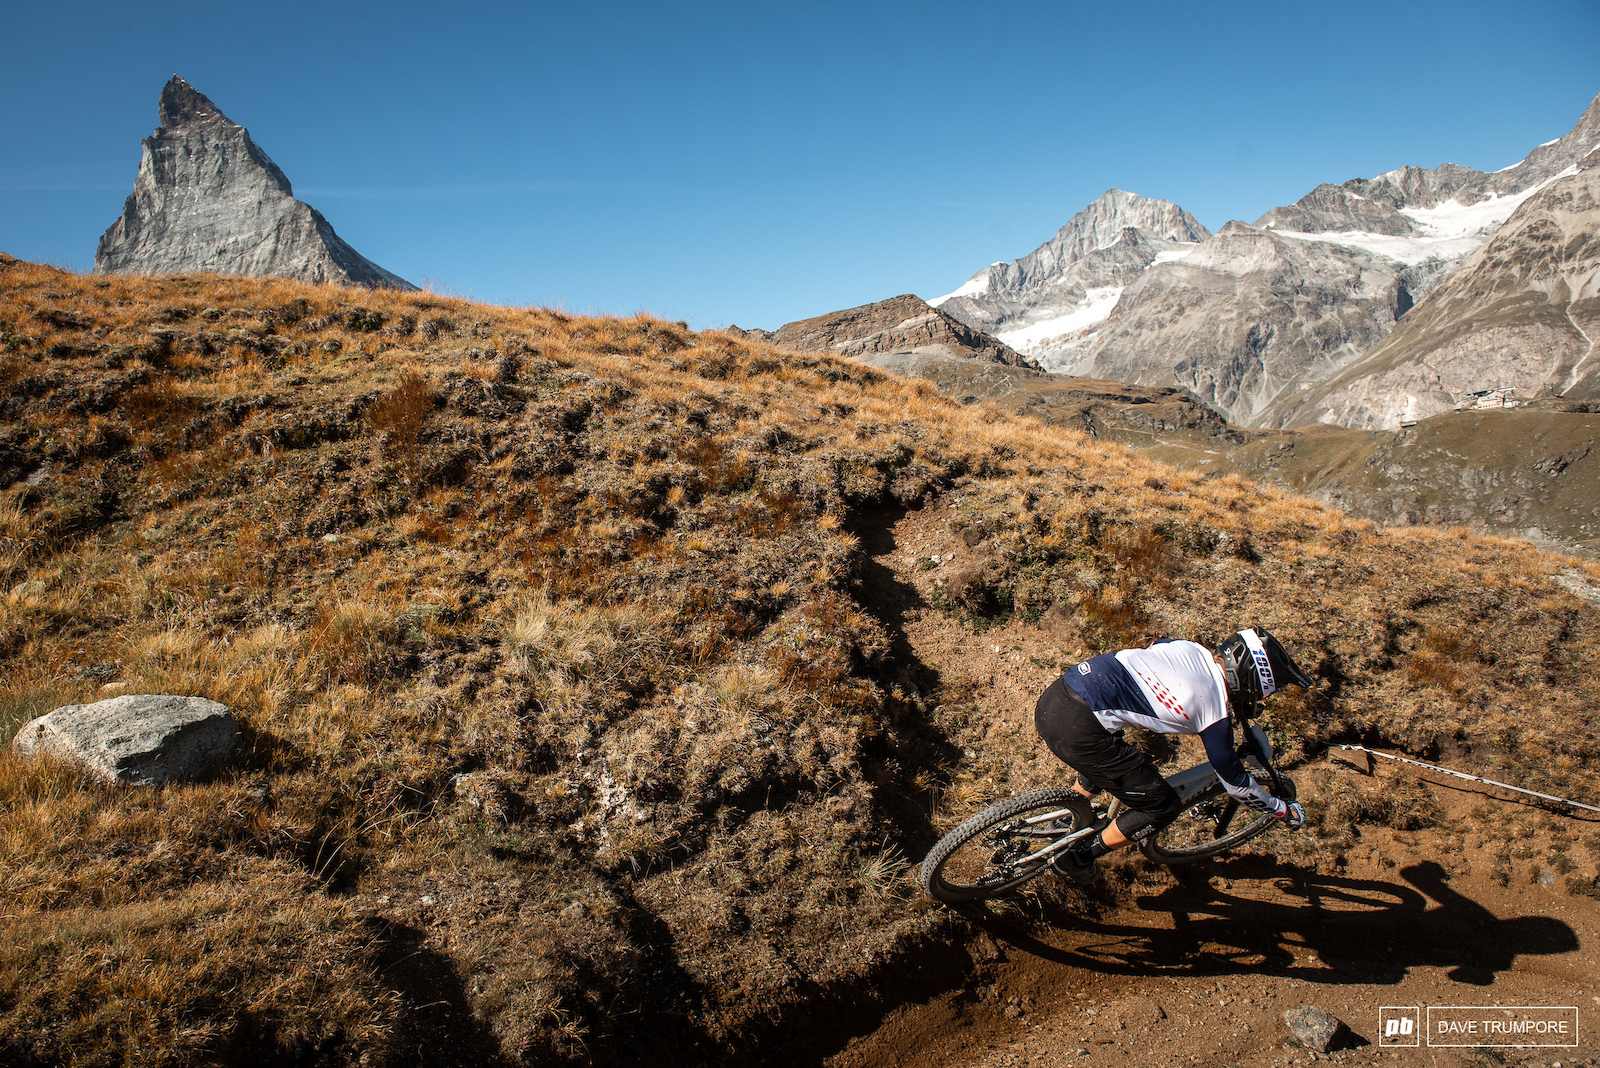 Spencer Rathcamp taking the high line as the Matterhorn keeps watching the distance